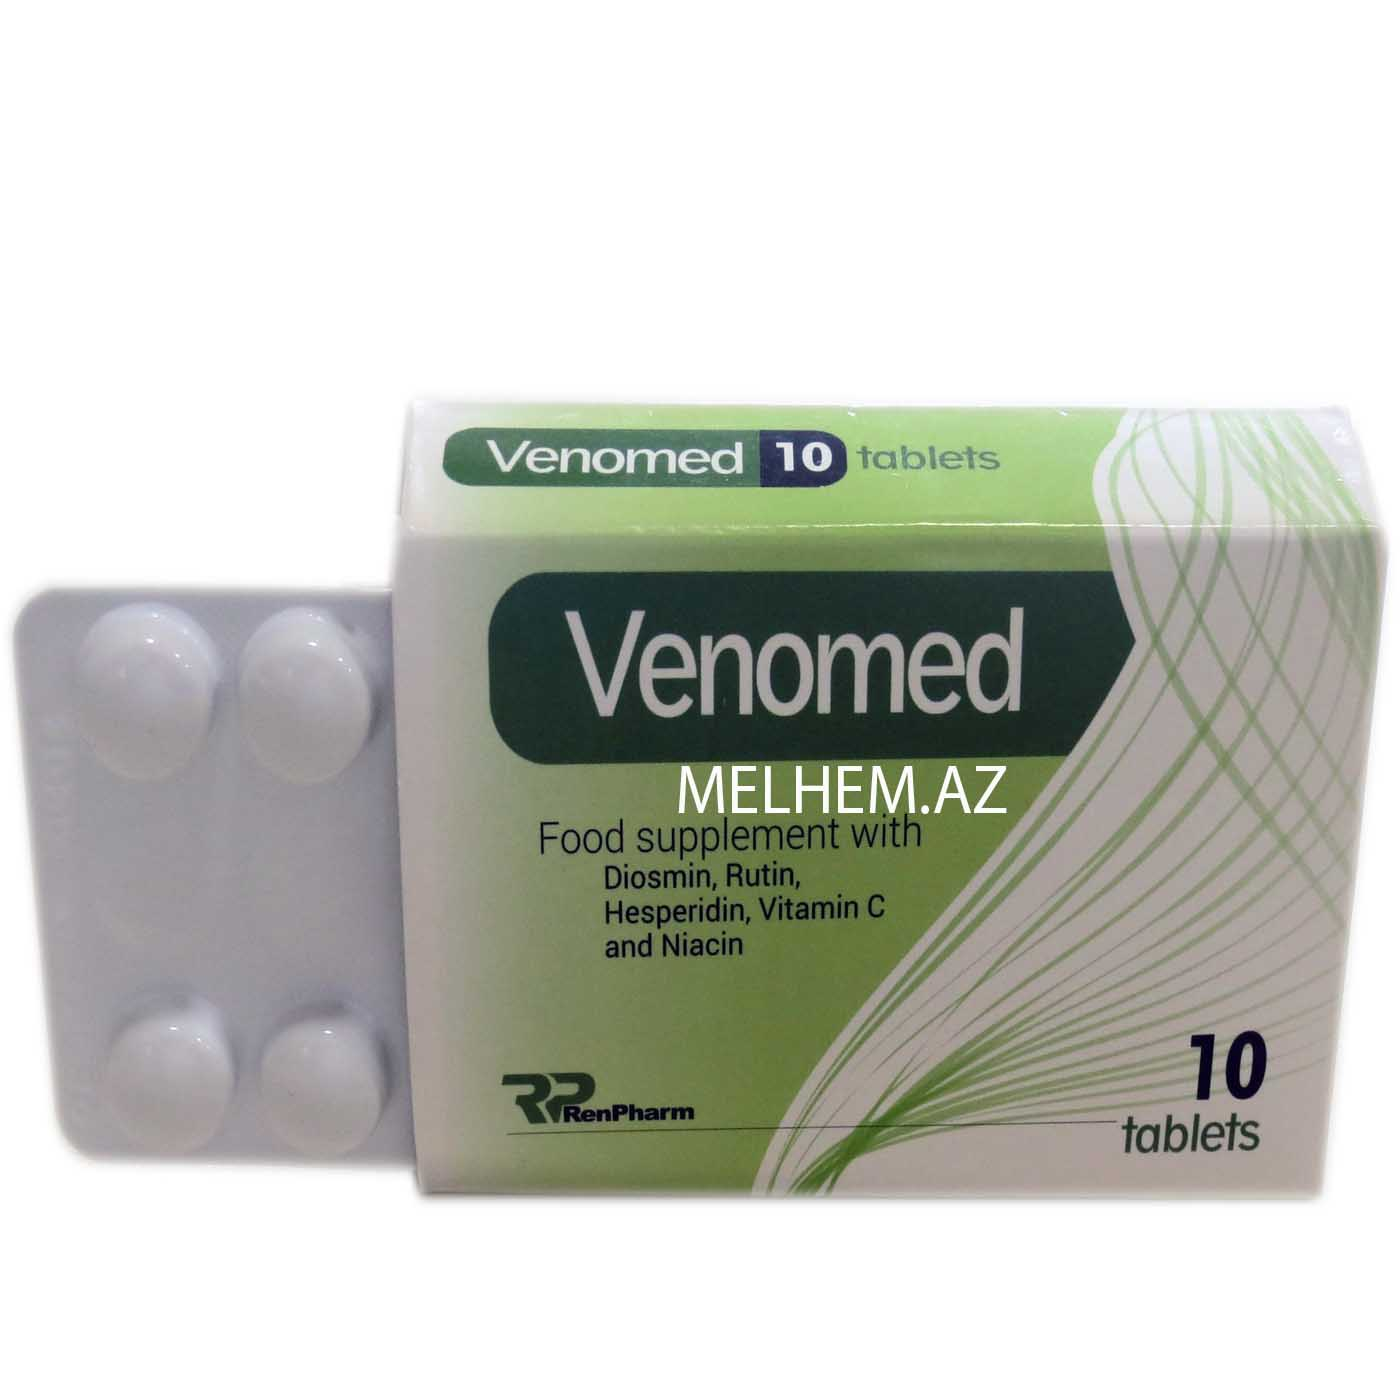 VENOMED